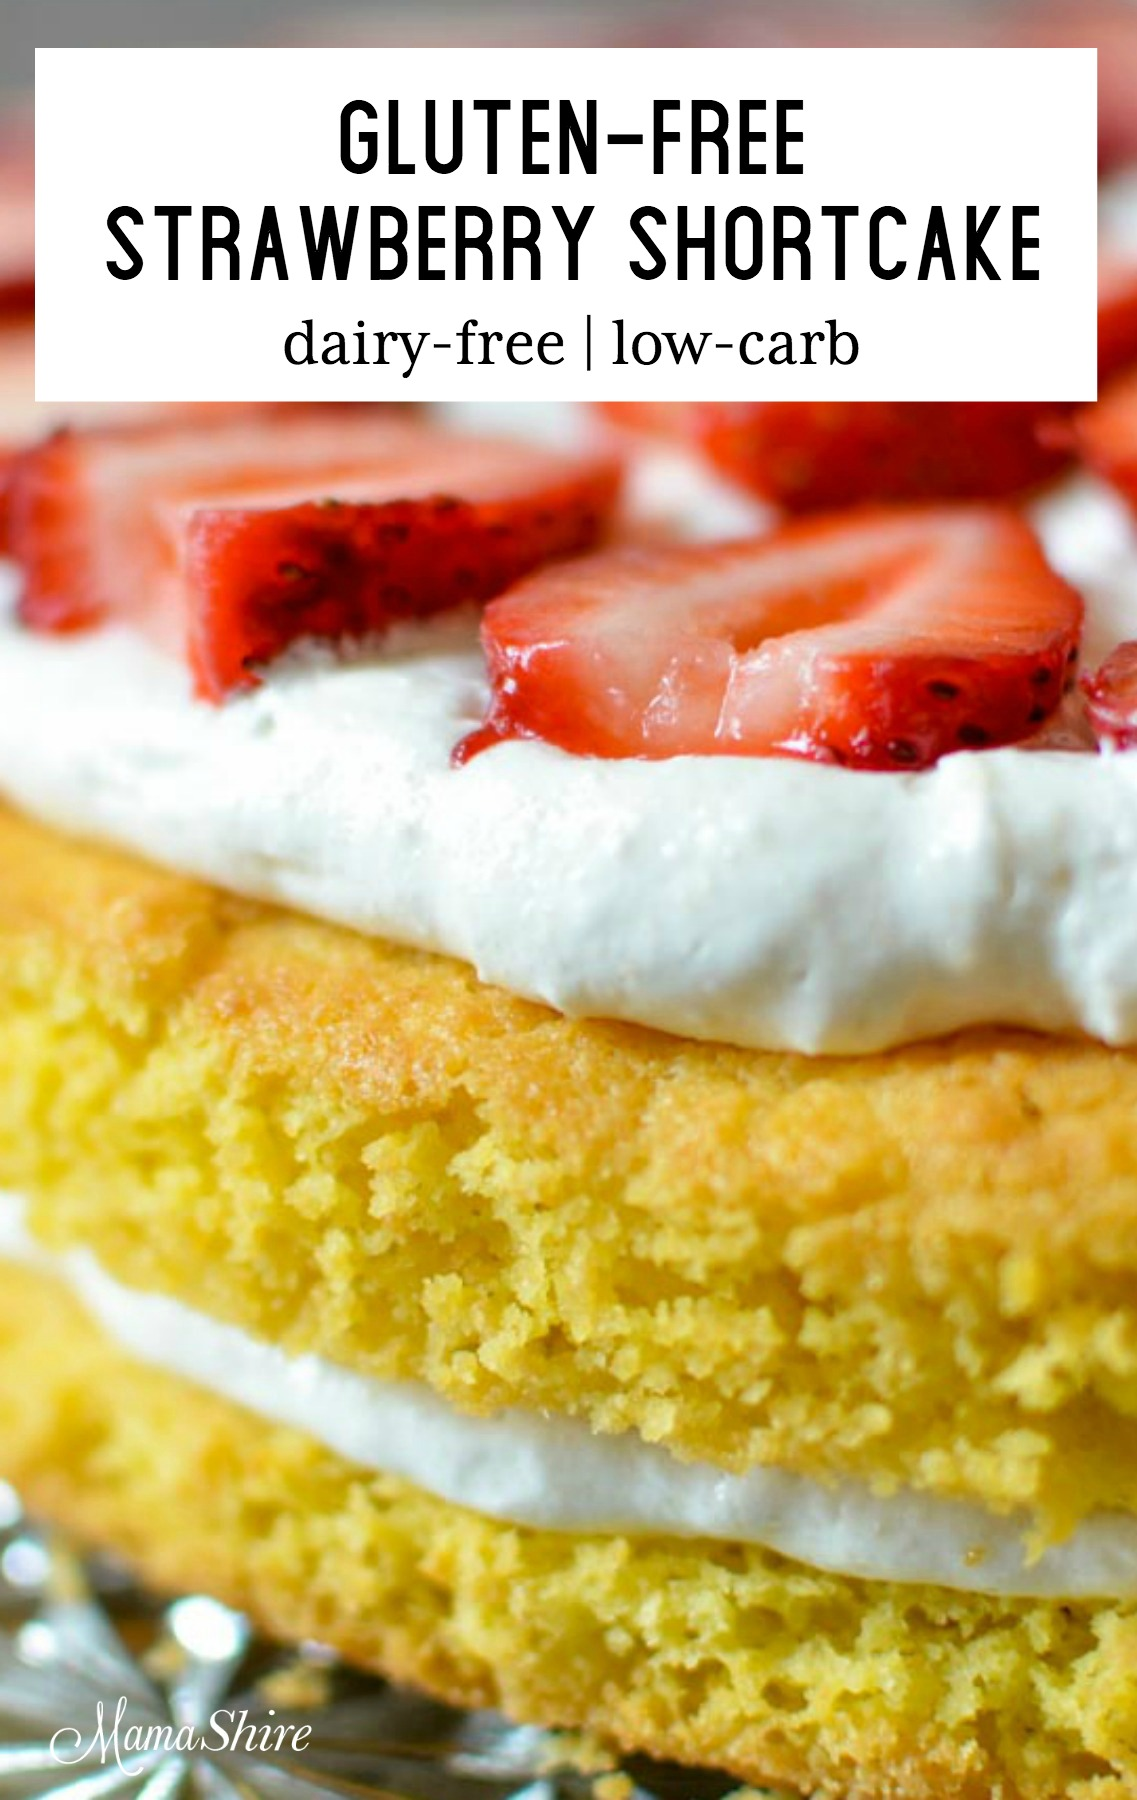 Delicious gluten-free strawberry shortcake.